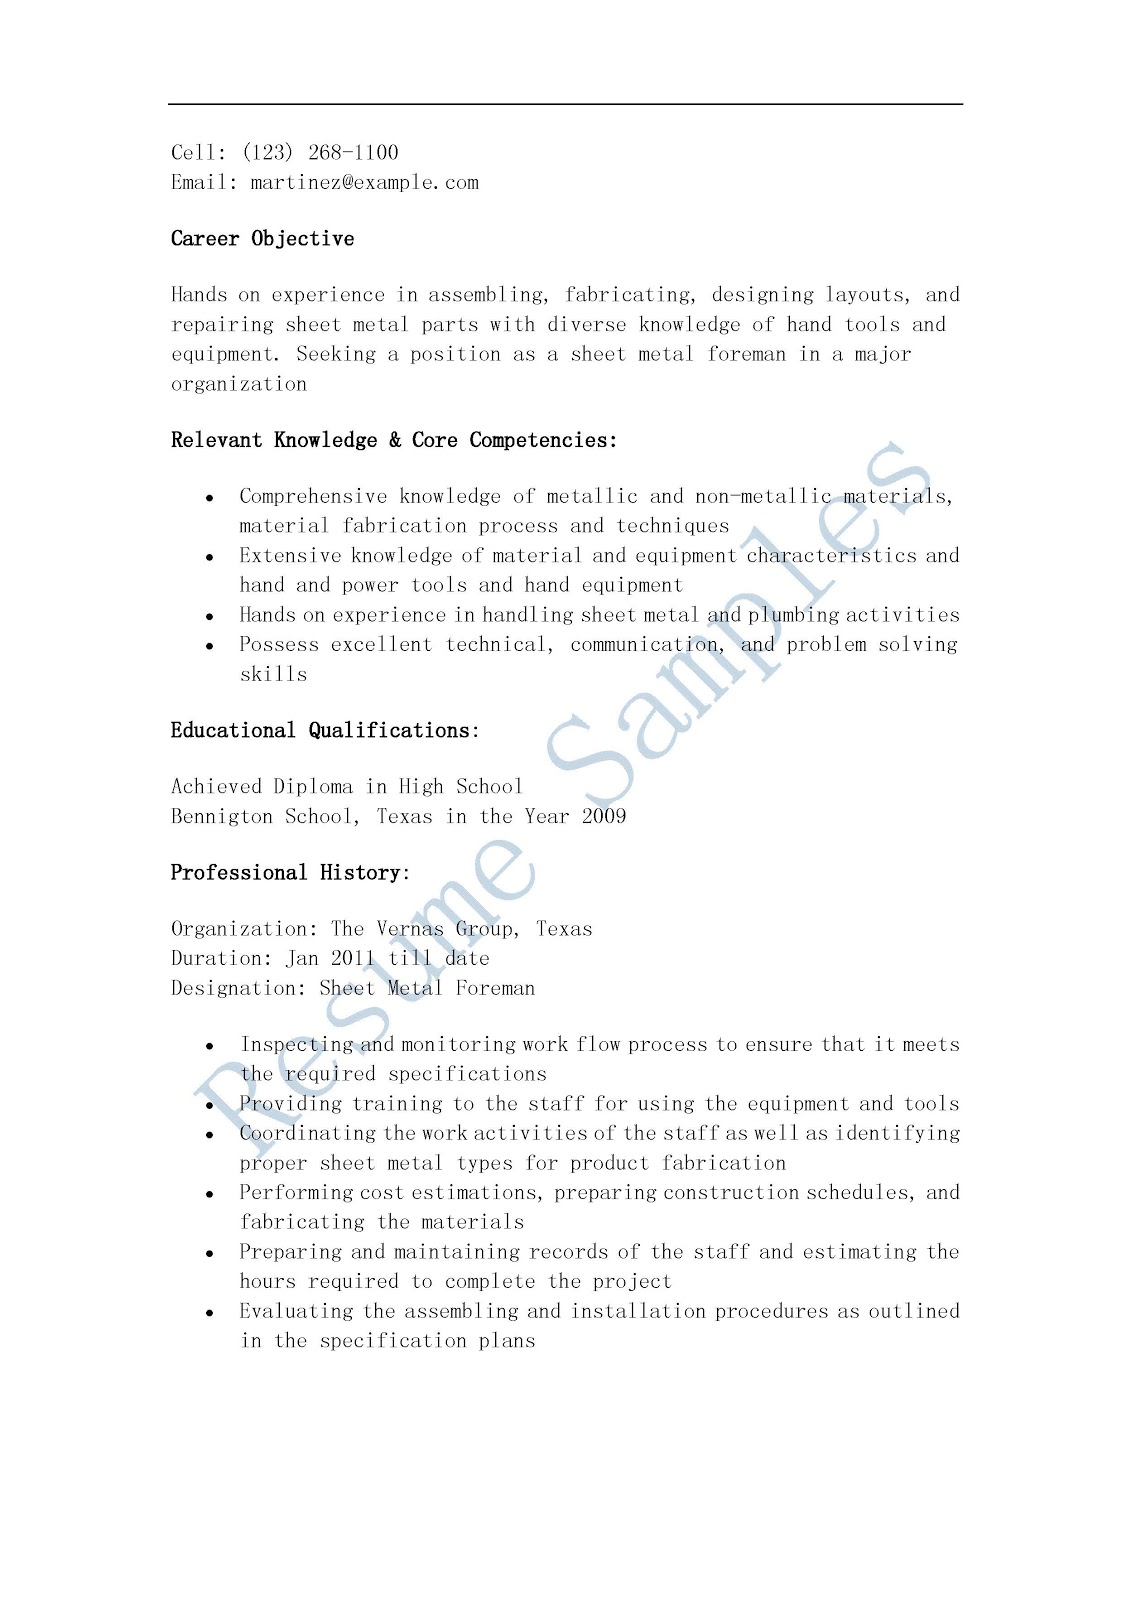 Resume Samples: Sheet Metal Foreman Resume